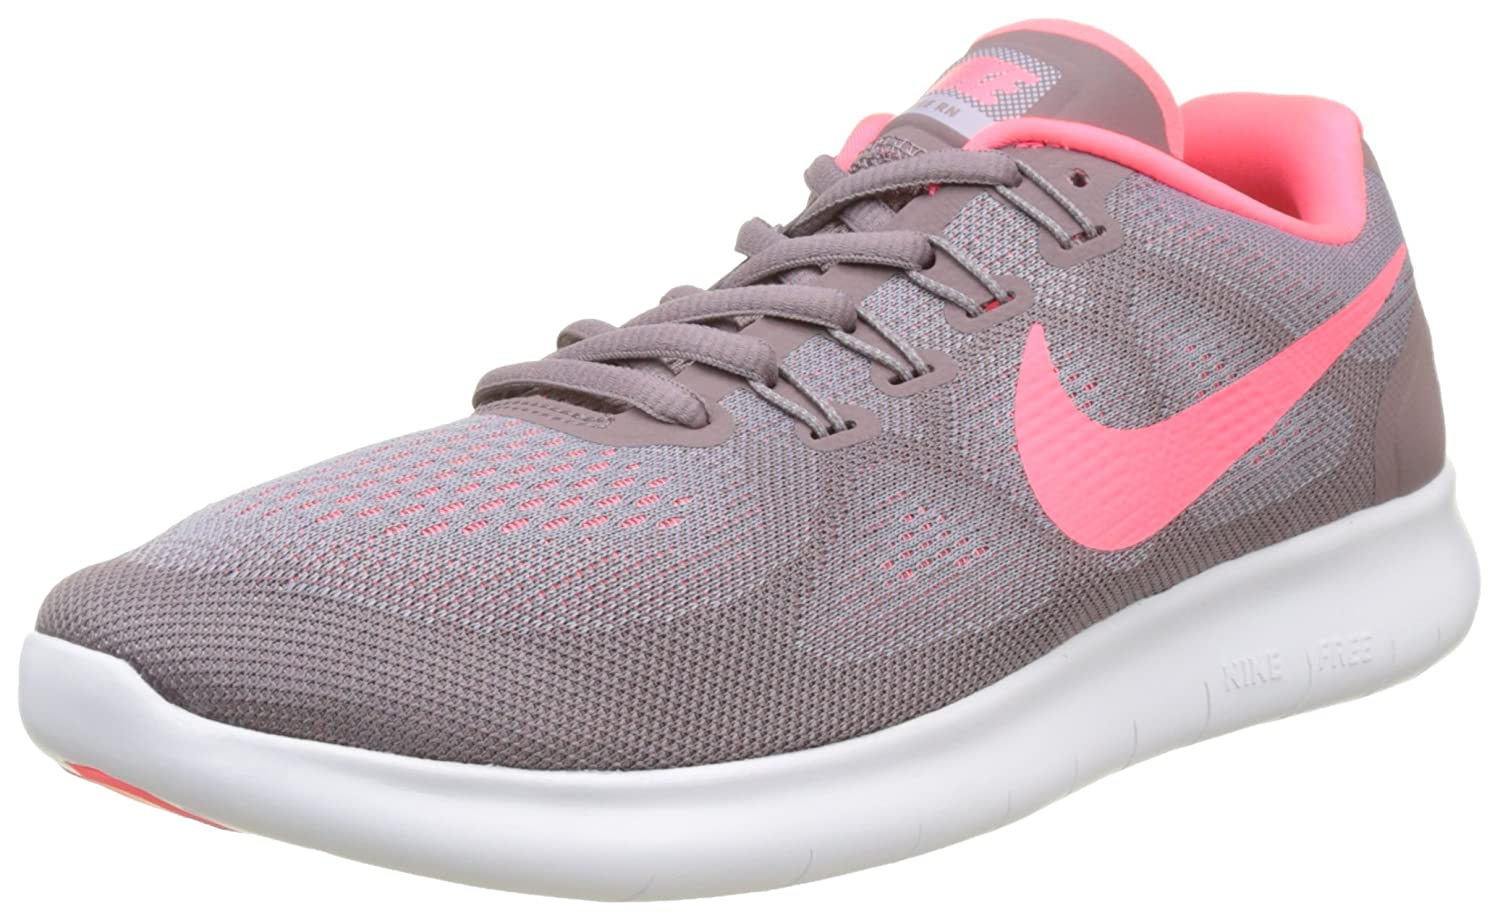 - Nike Free RN 2017 Provence Purple Hot Punch Taupe Grey Women's Running shoes